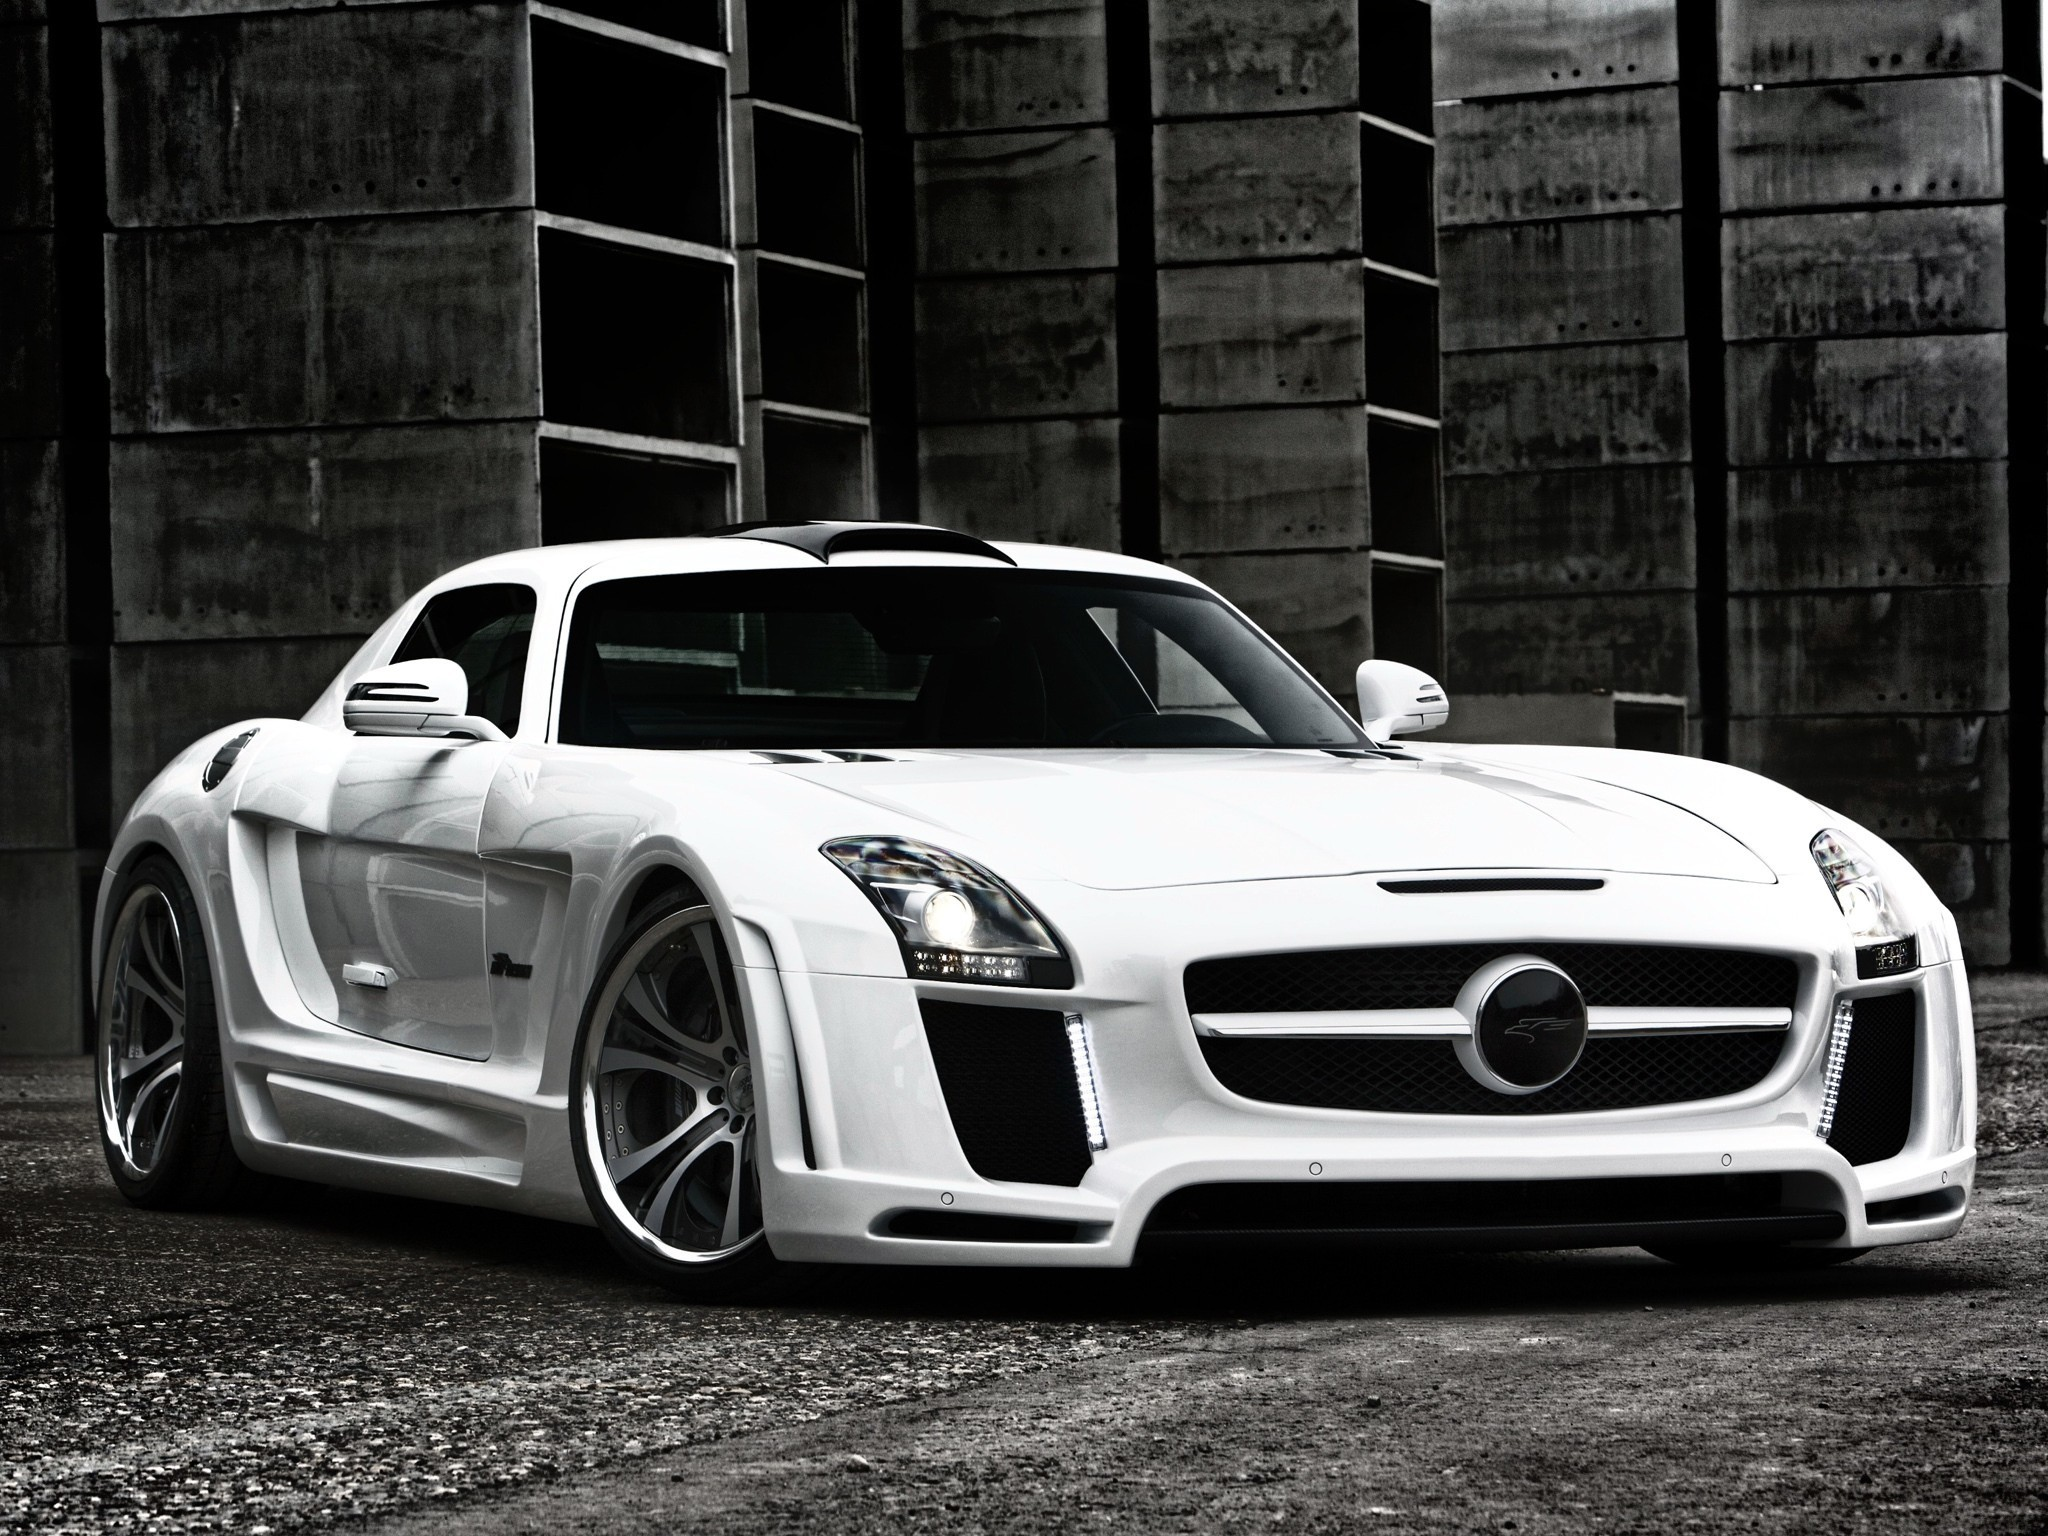 cars Supercars mercedes-benz sls HD Wallpaper